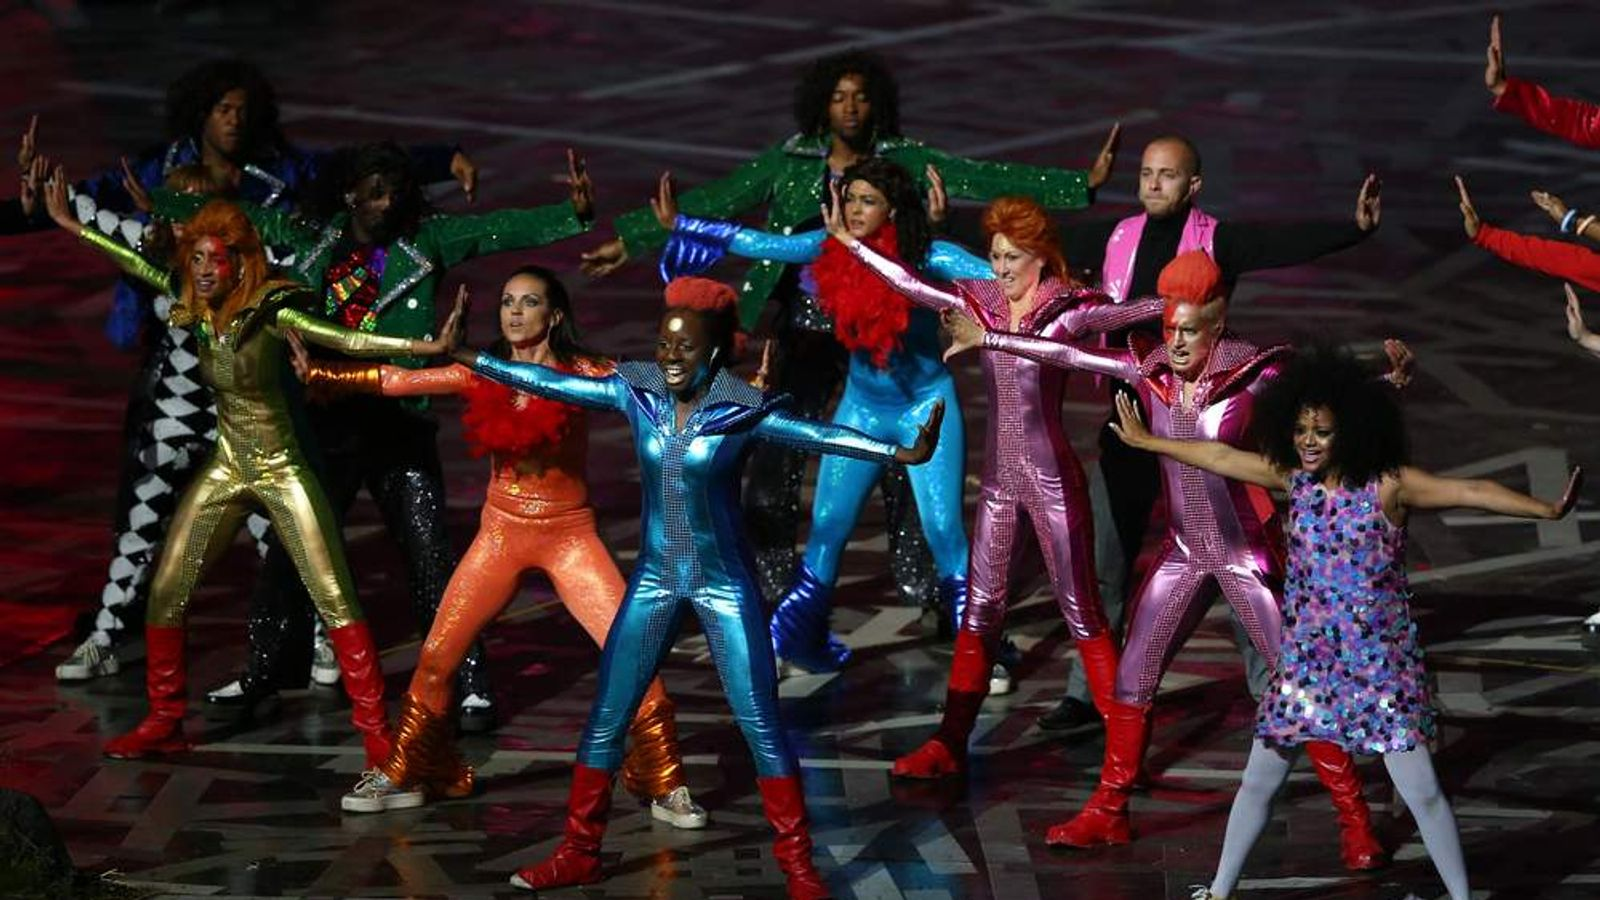 Performers pay tribute to British music during the Opening Ceremony.